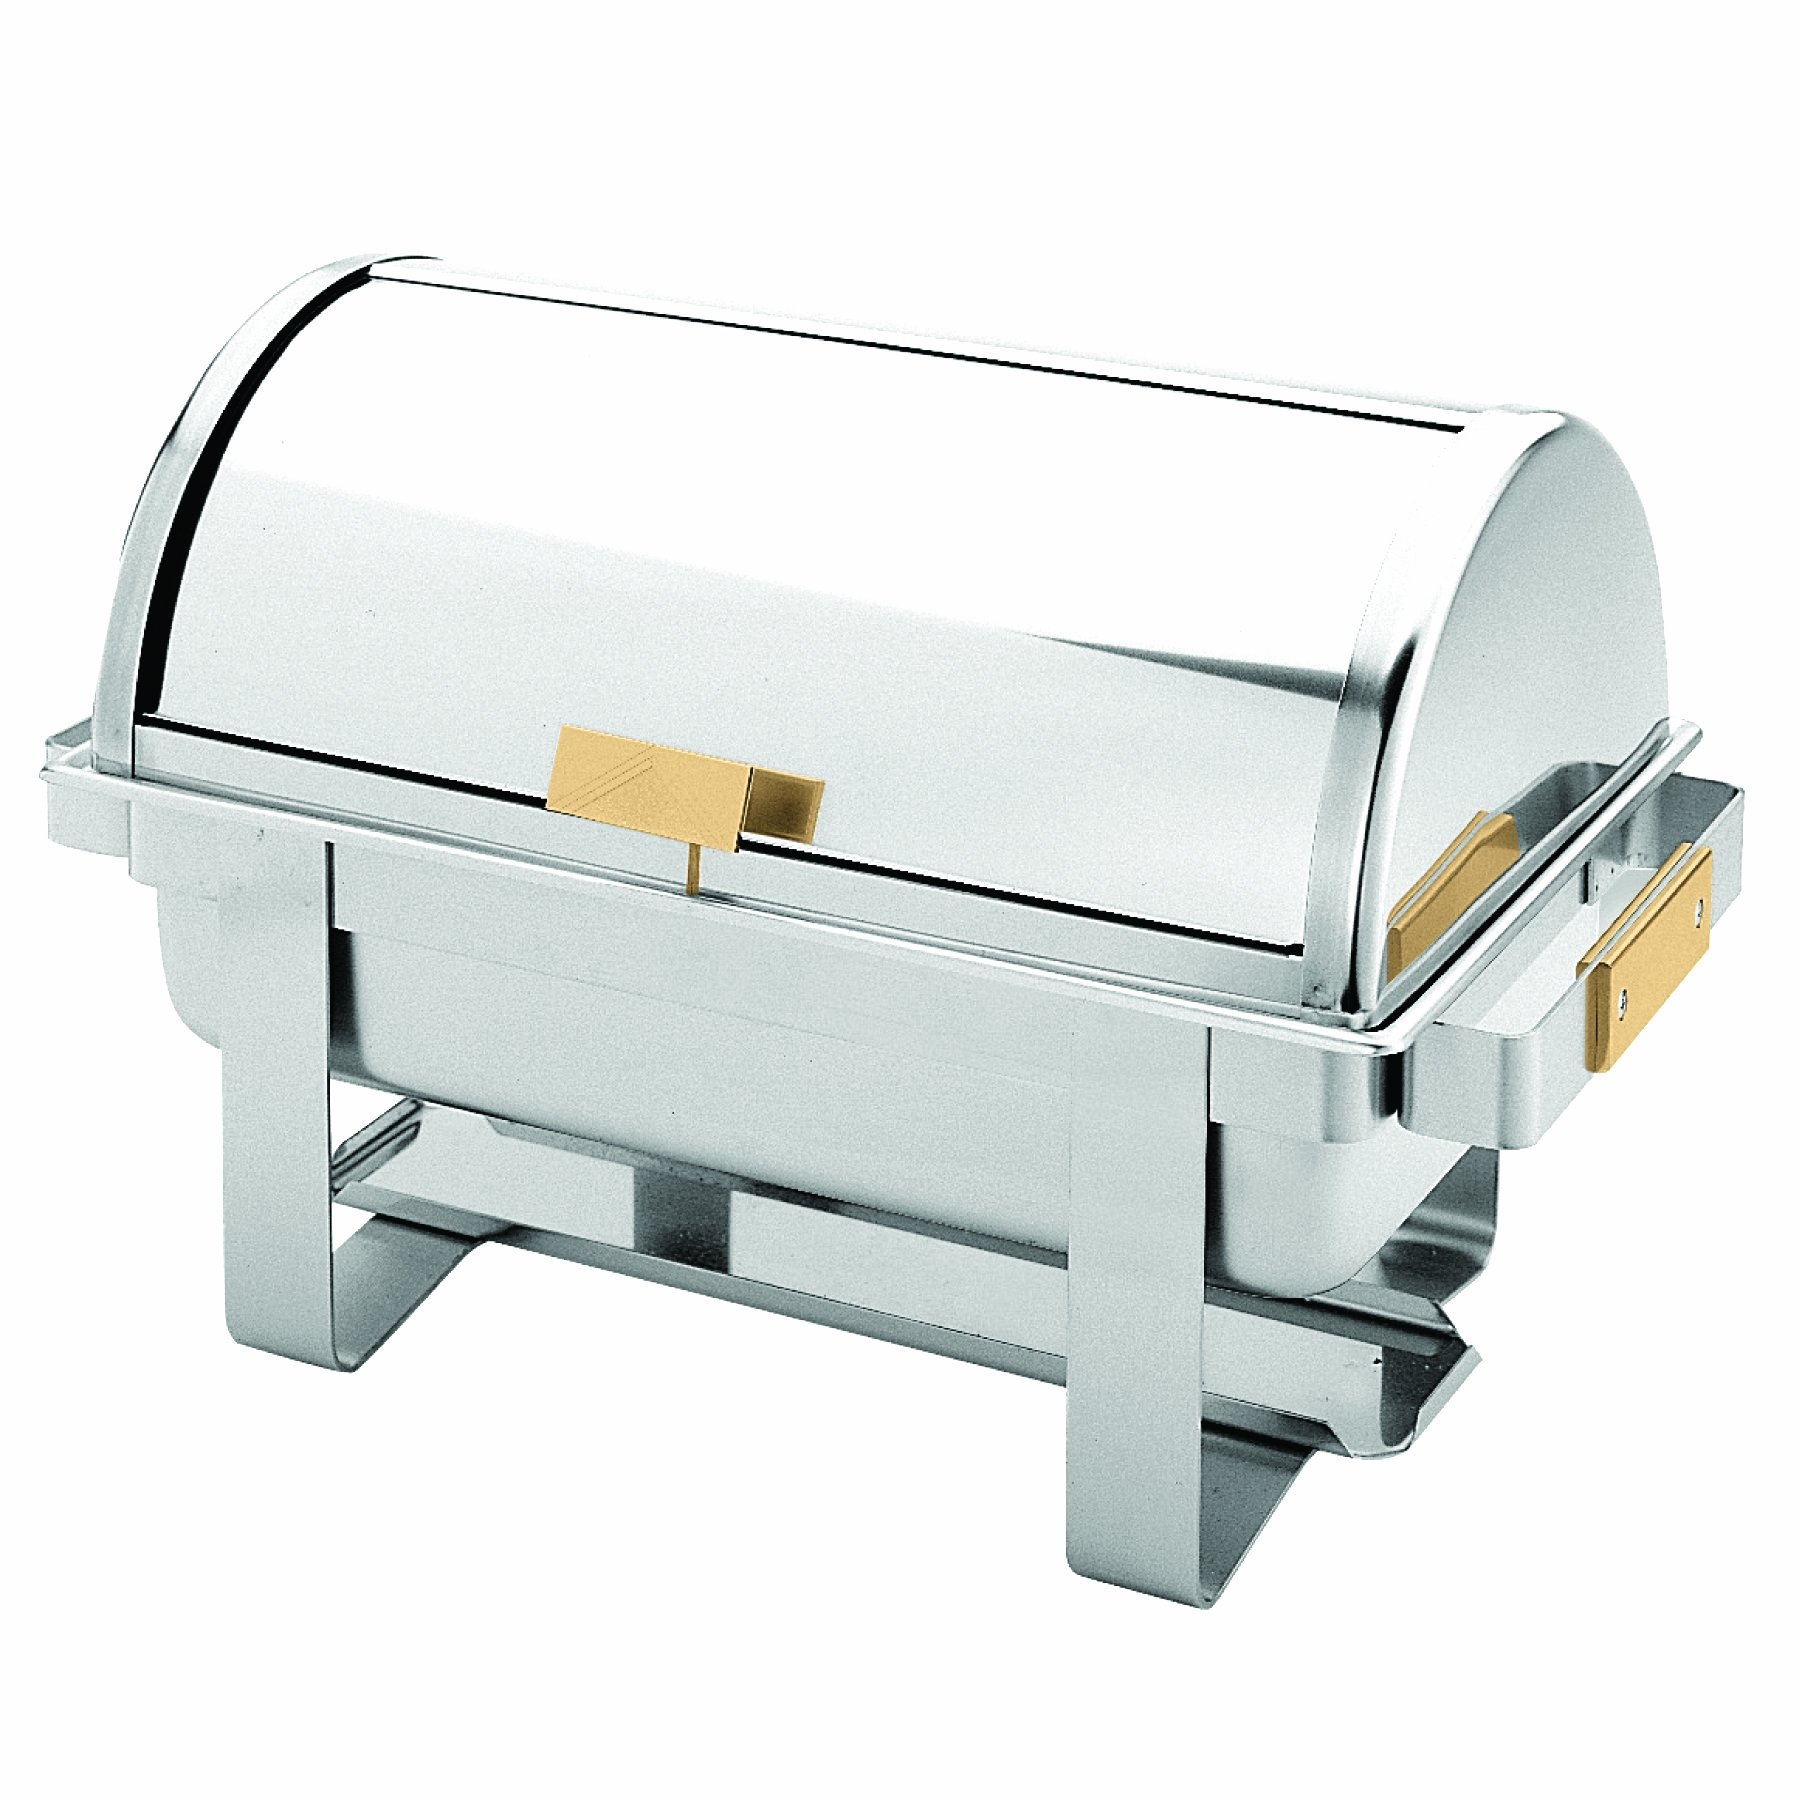 Excellanté Stainless Steel 8 Quart Roll Top / Golden Handle Chafer